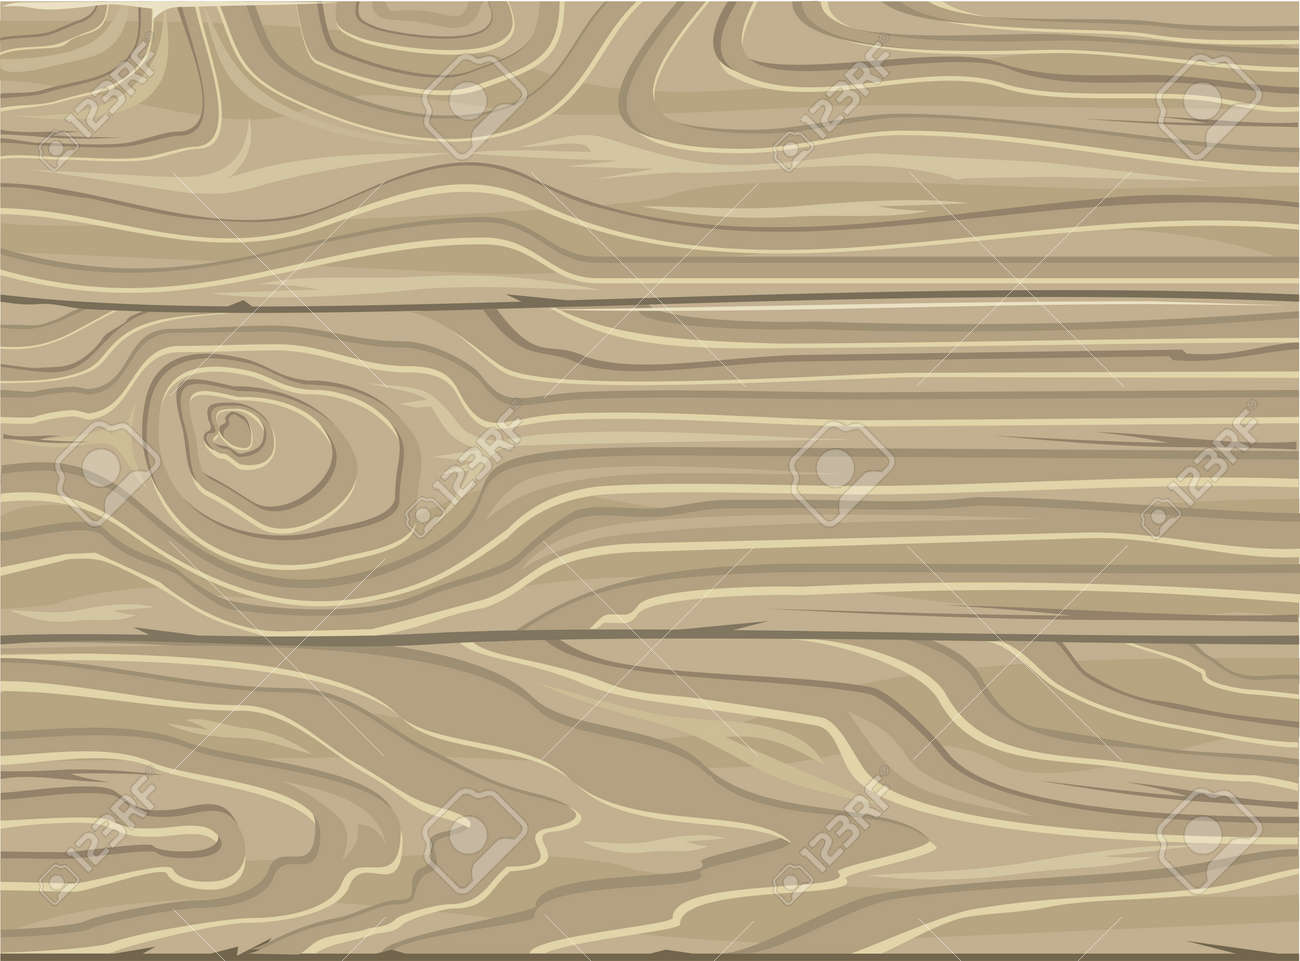 Natural Wooden Background. Wood Texture. Striped Timber Desk Wooden Grain  Plank. Grey Boards